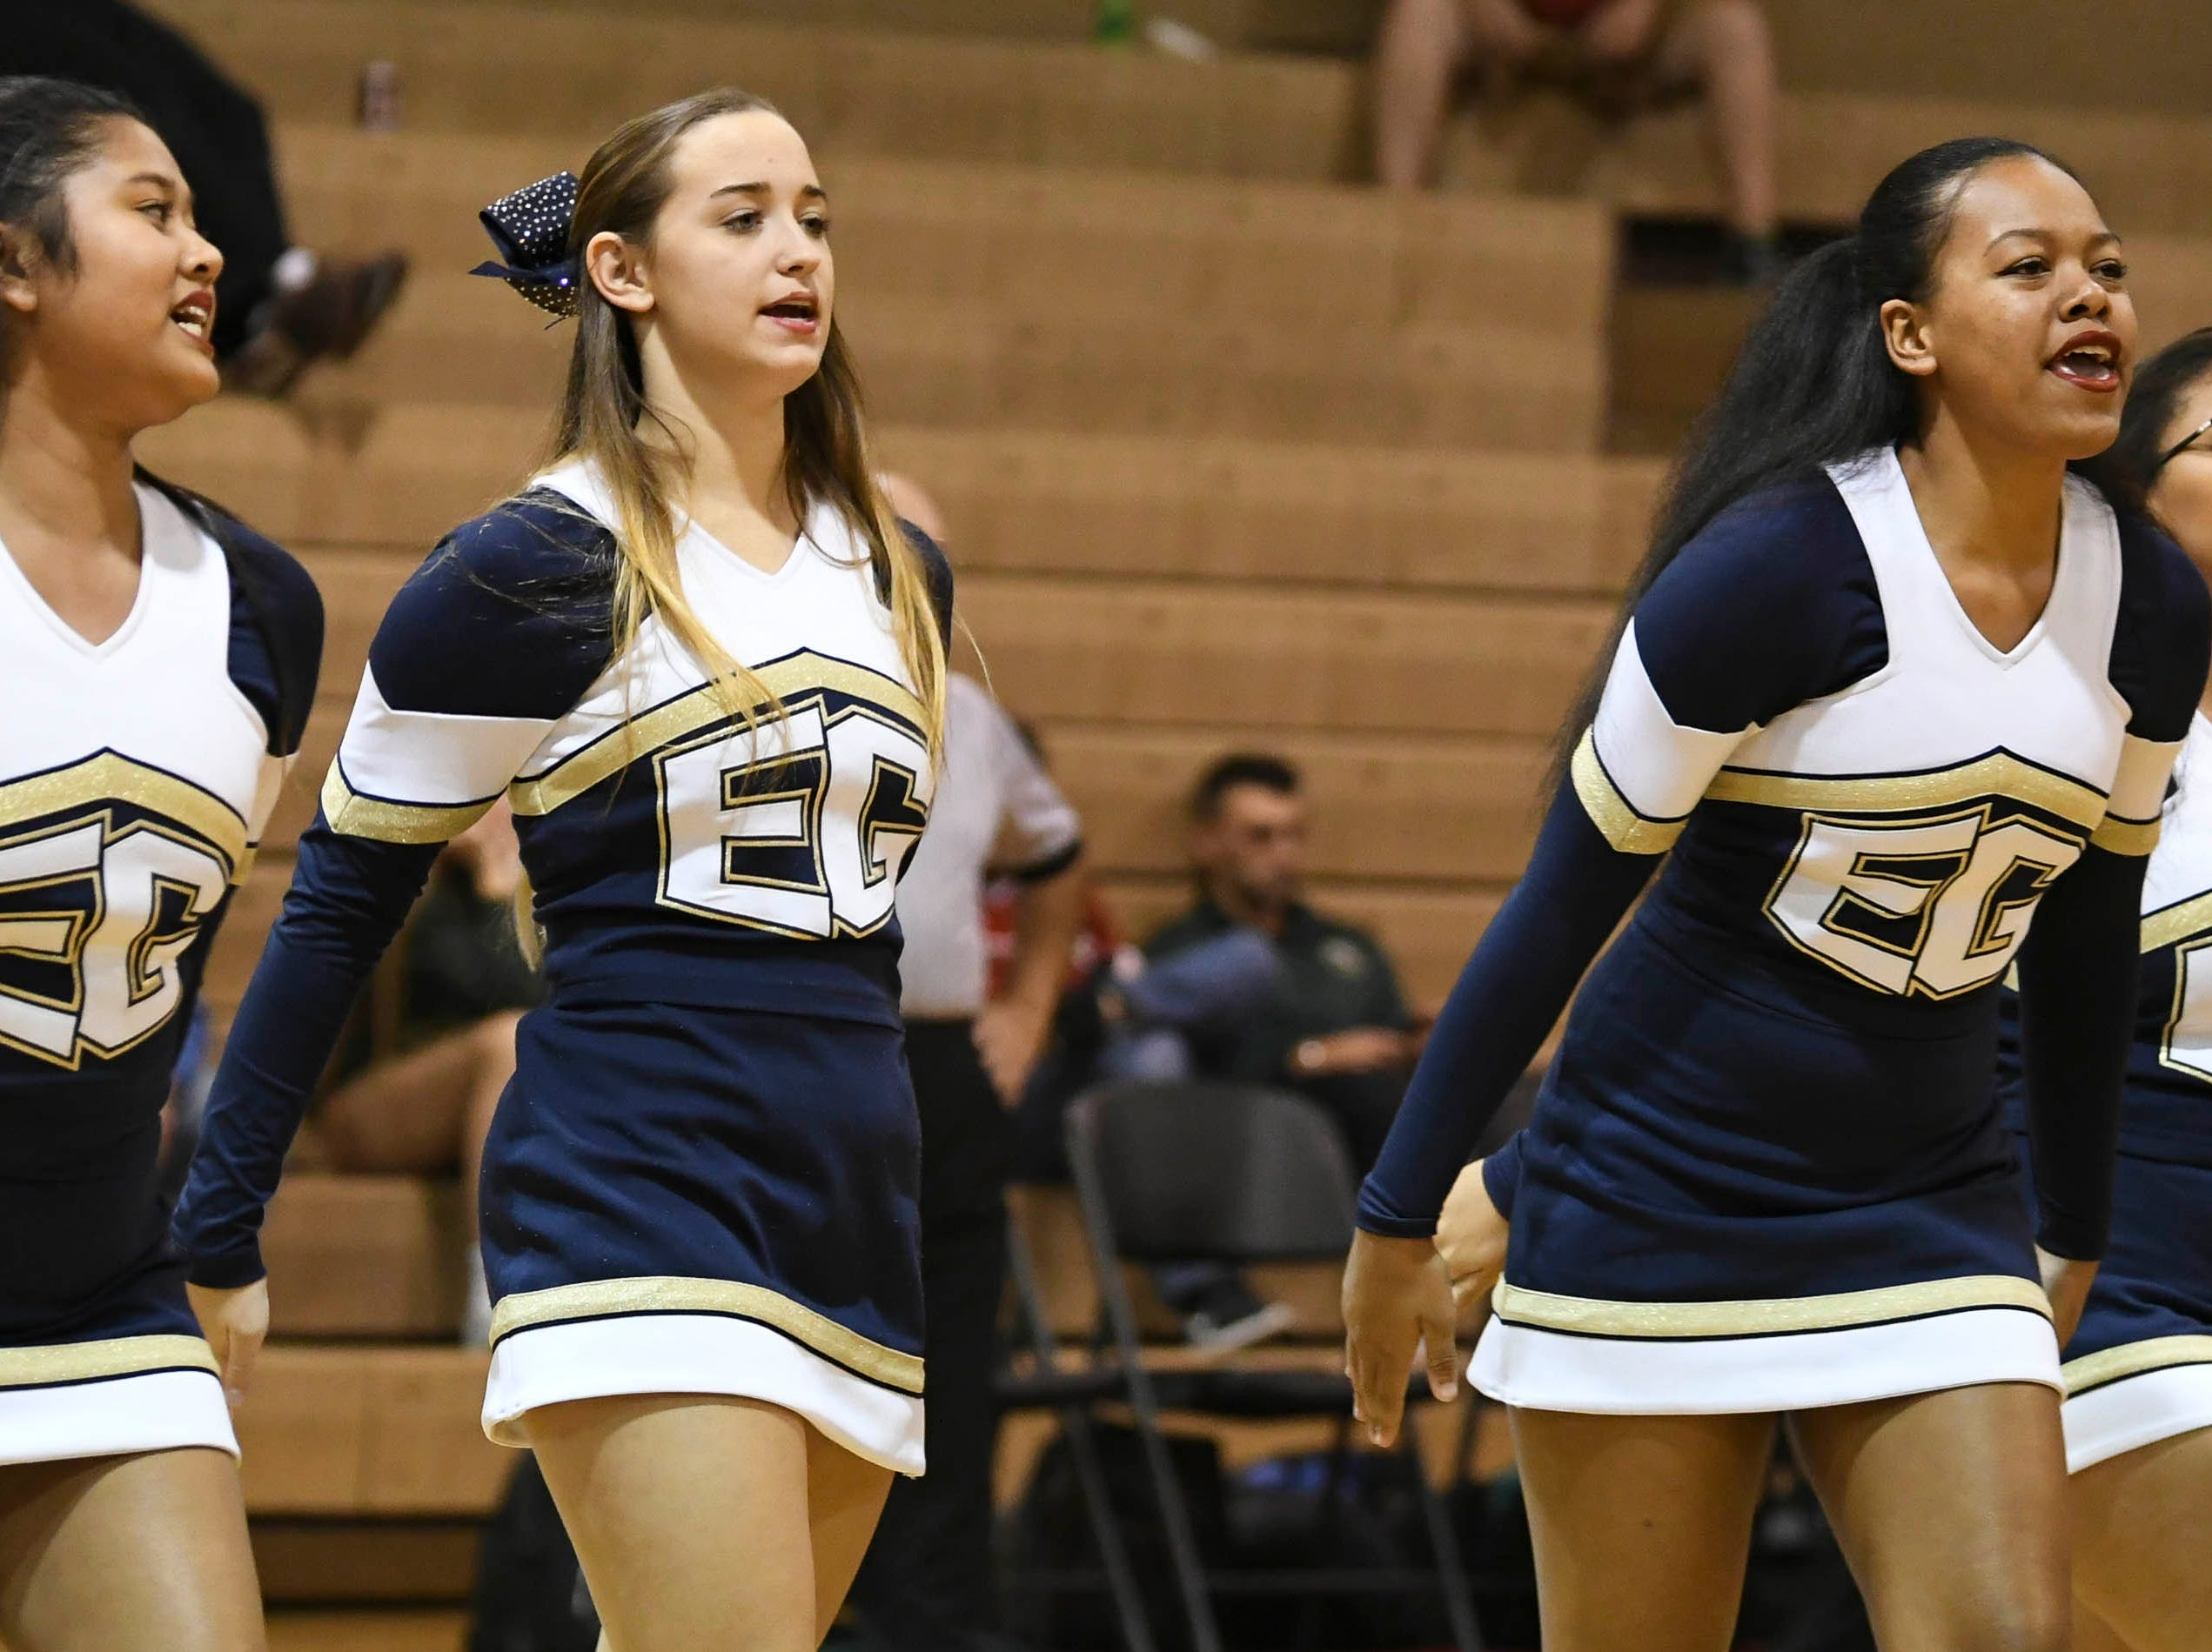 Eau Gallie's cheerleaders perform during Wednesday's basketball game at Eau Gallie High.